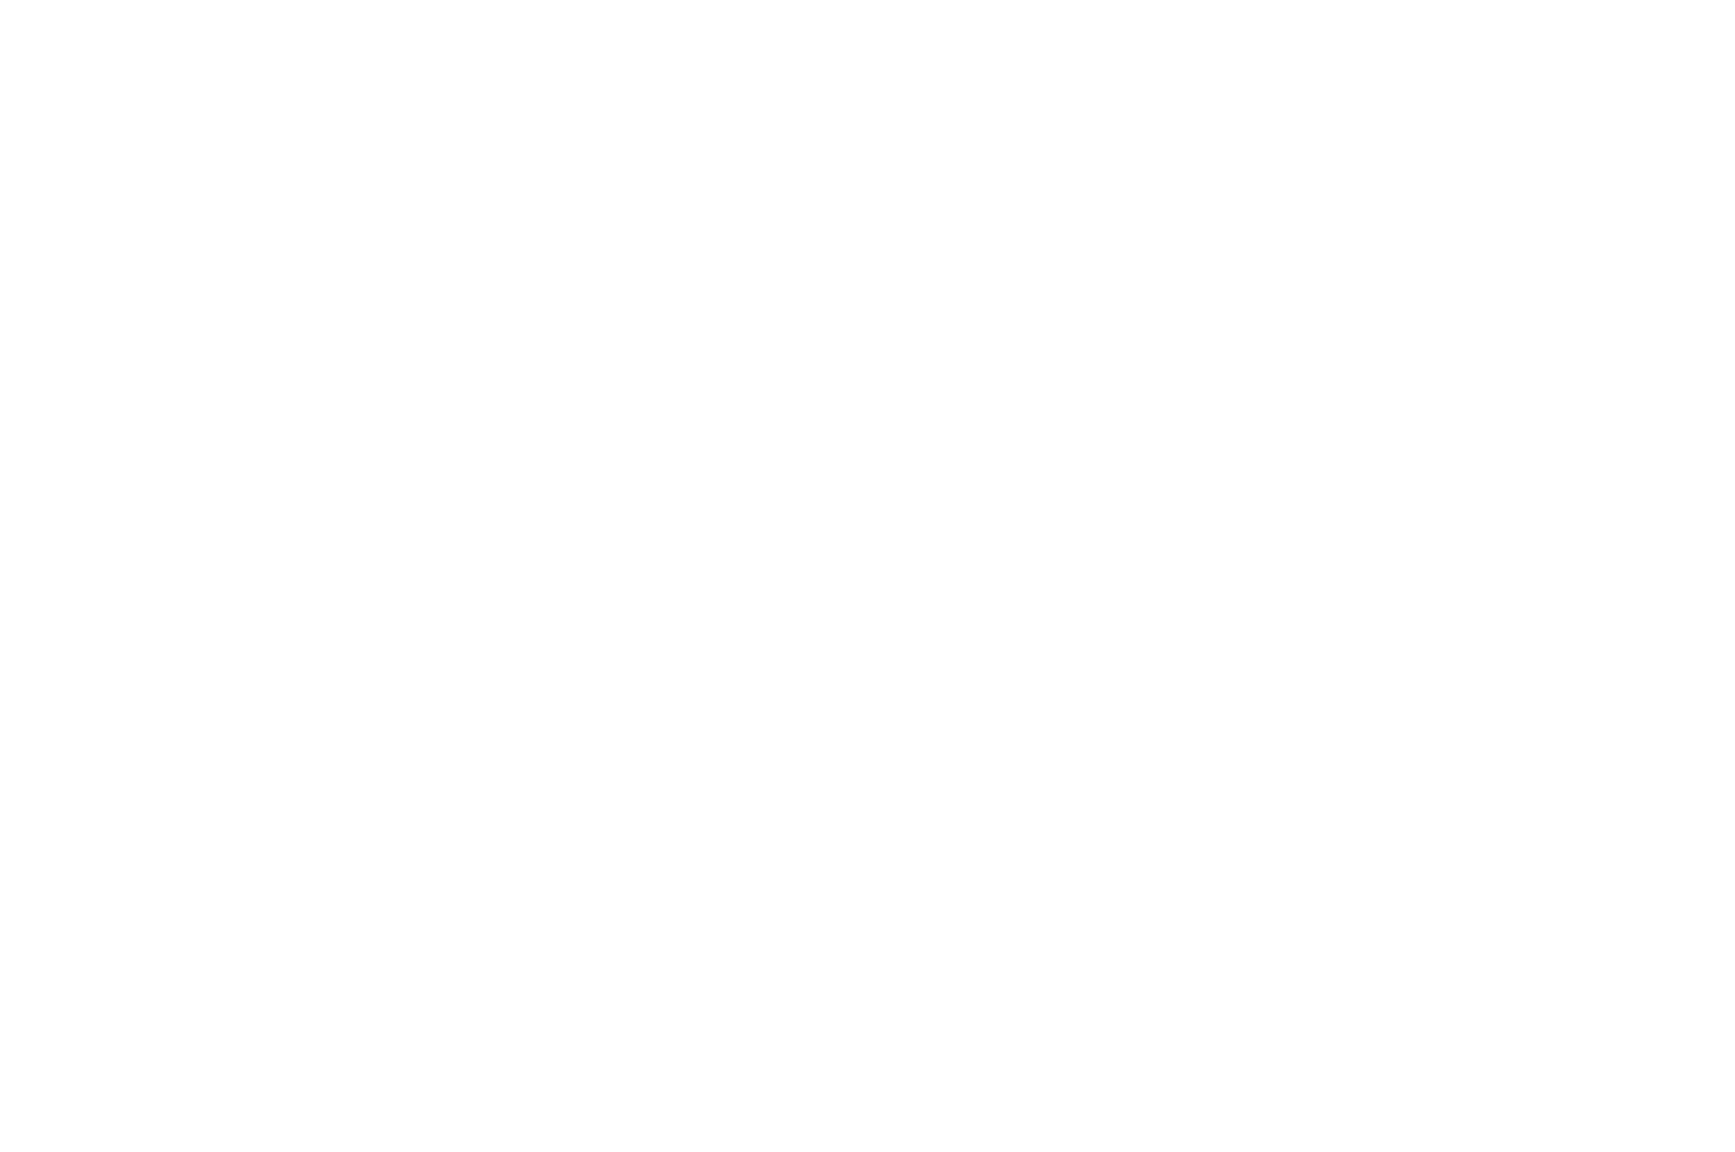 OFFICIAL SELECTION - Script Summit Screenplay Competition - 2020